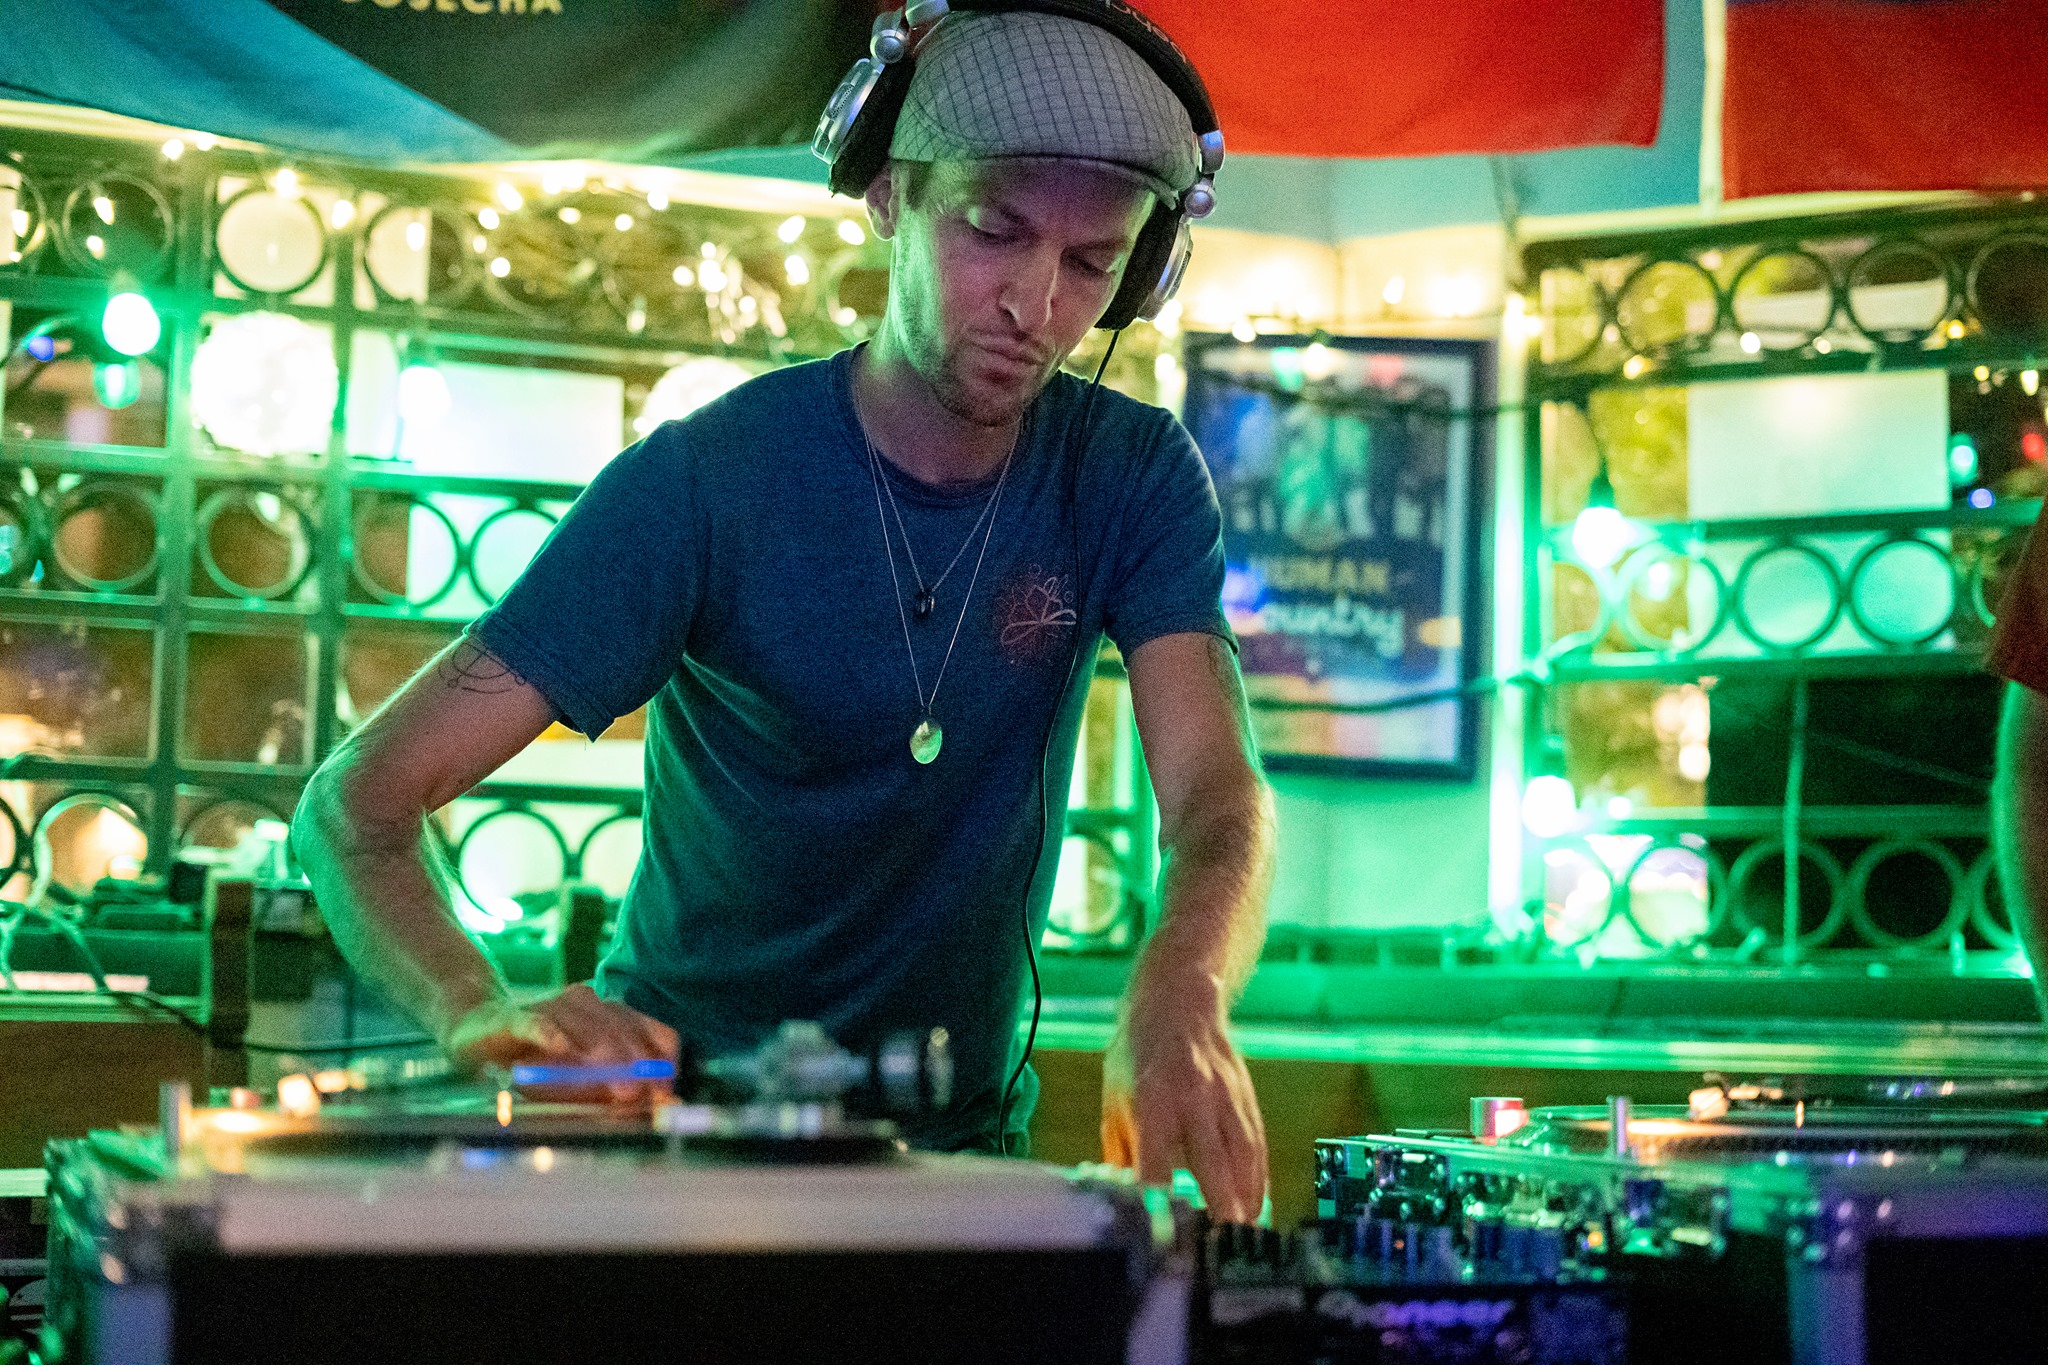 DJ Ty Hussell in Costa Rica